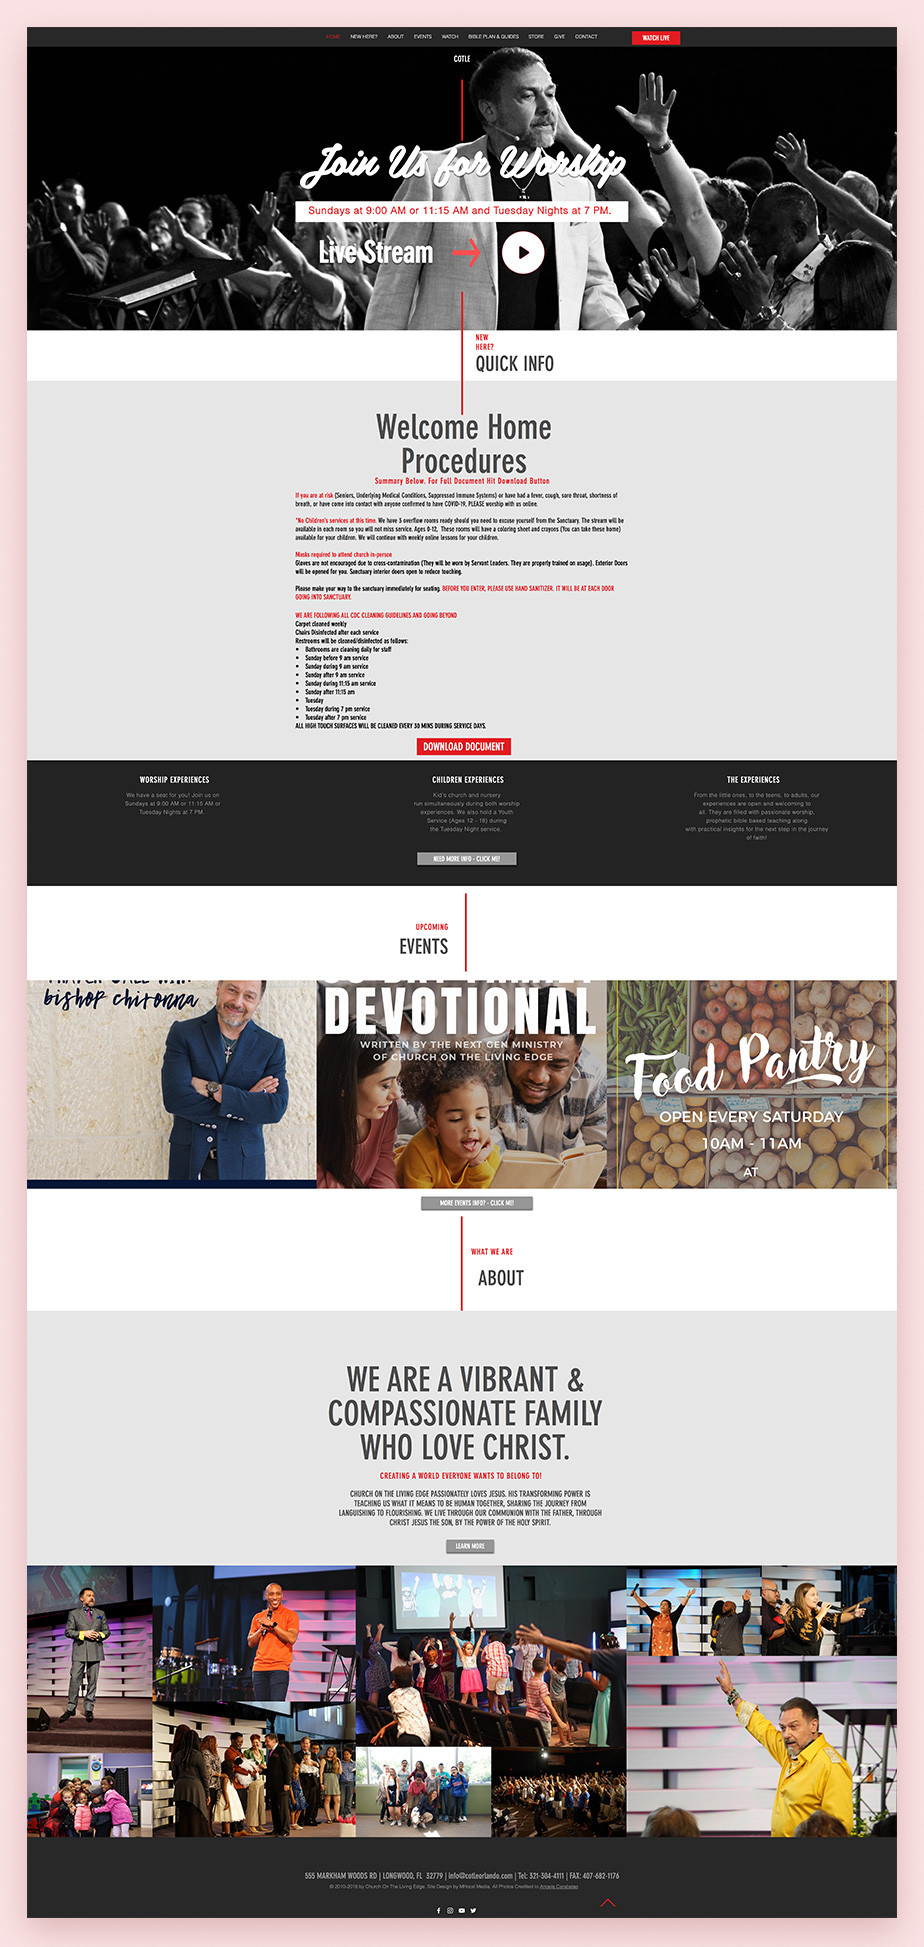 Best church websites example by Church on the Living Edge